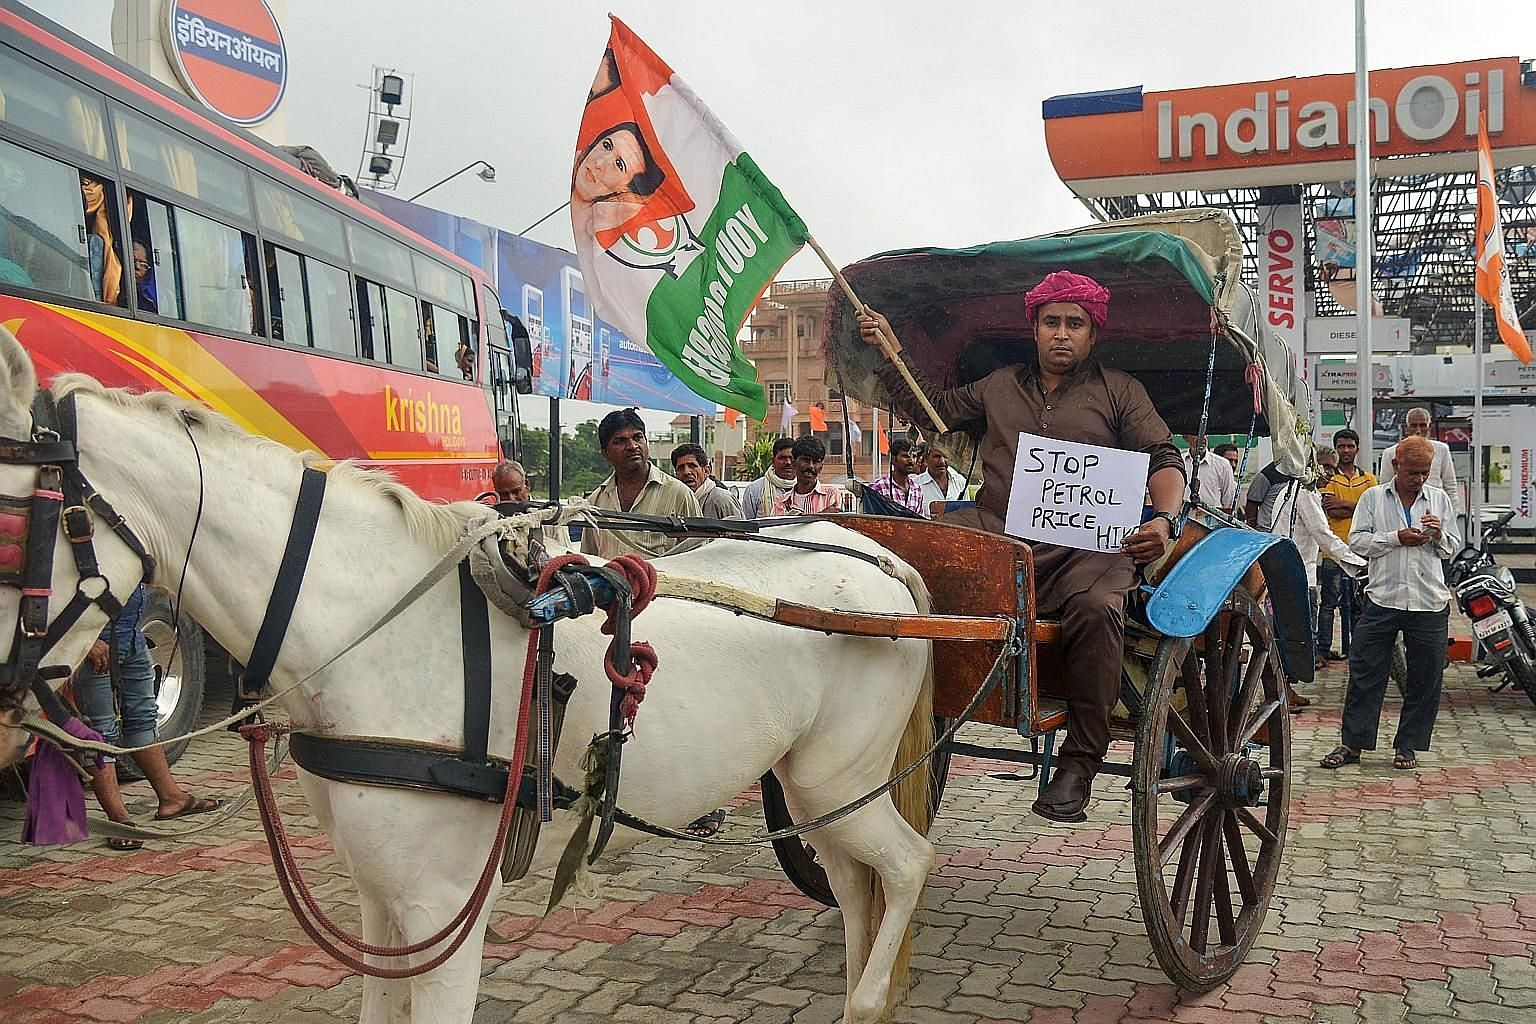 A Congress party activist holding a party flag and placard while sitting on a cart next to a petrol station in Ajmer yesterday during a nationwide strike called by the main opposition parties. The opposition is looking to tap public anger against Pri